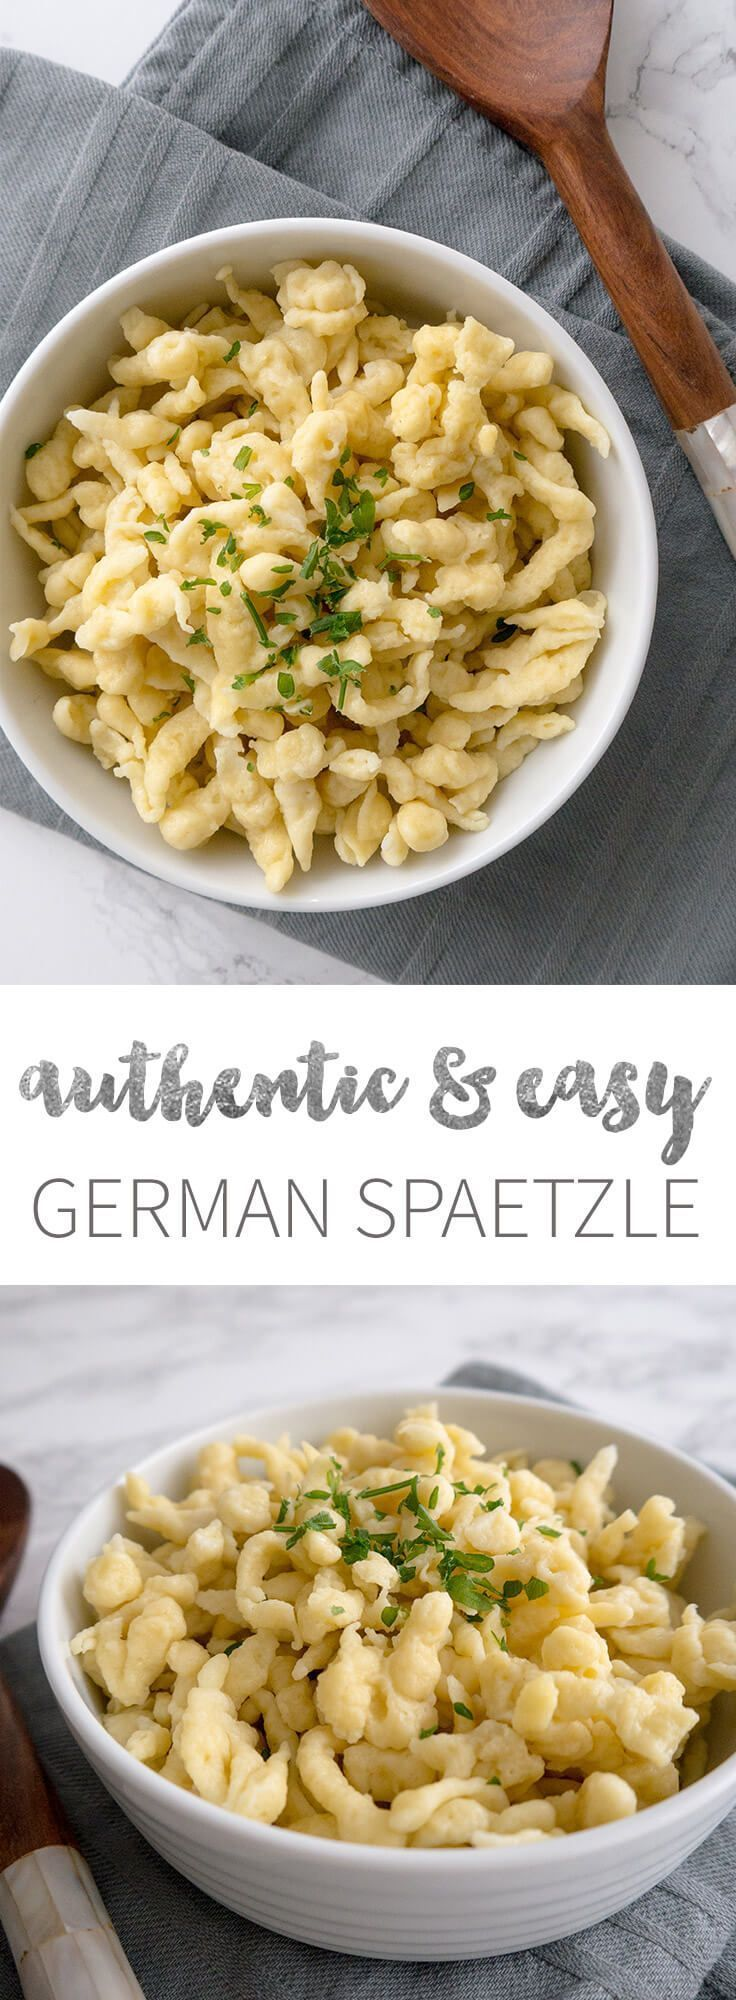 17592 best best food blogger recipes images on pinterest cooking easy german spaetzle recipe ready in only 15 minutes and a great side dish for forumfinder Gallery